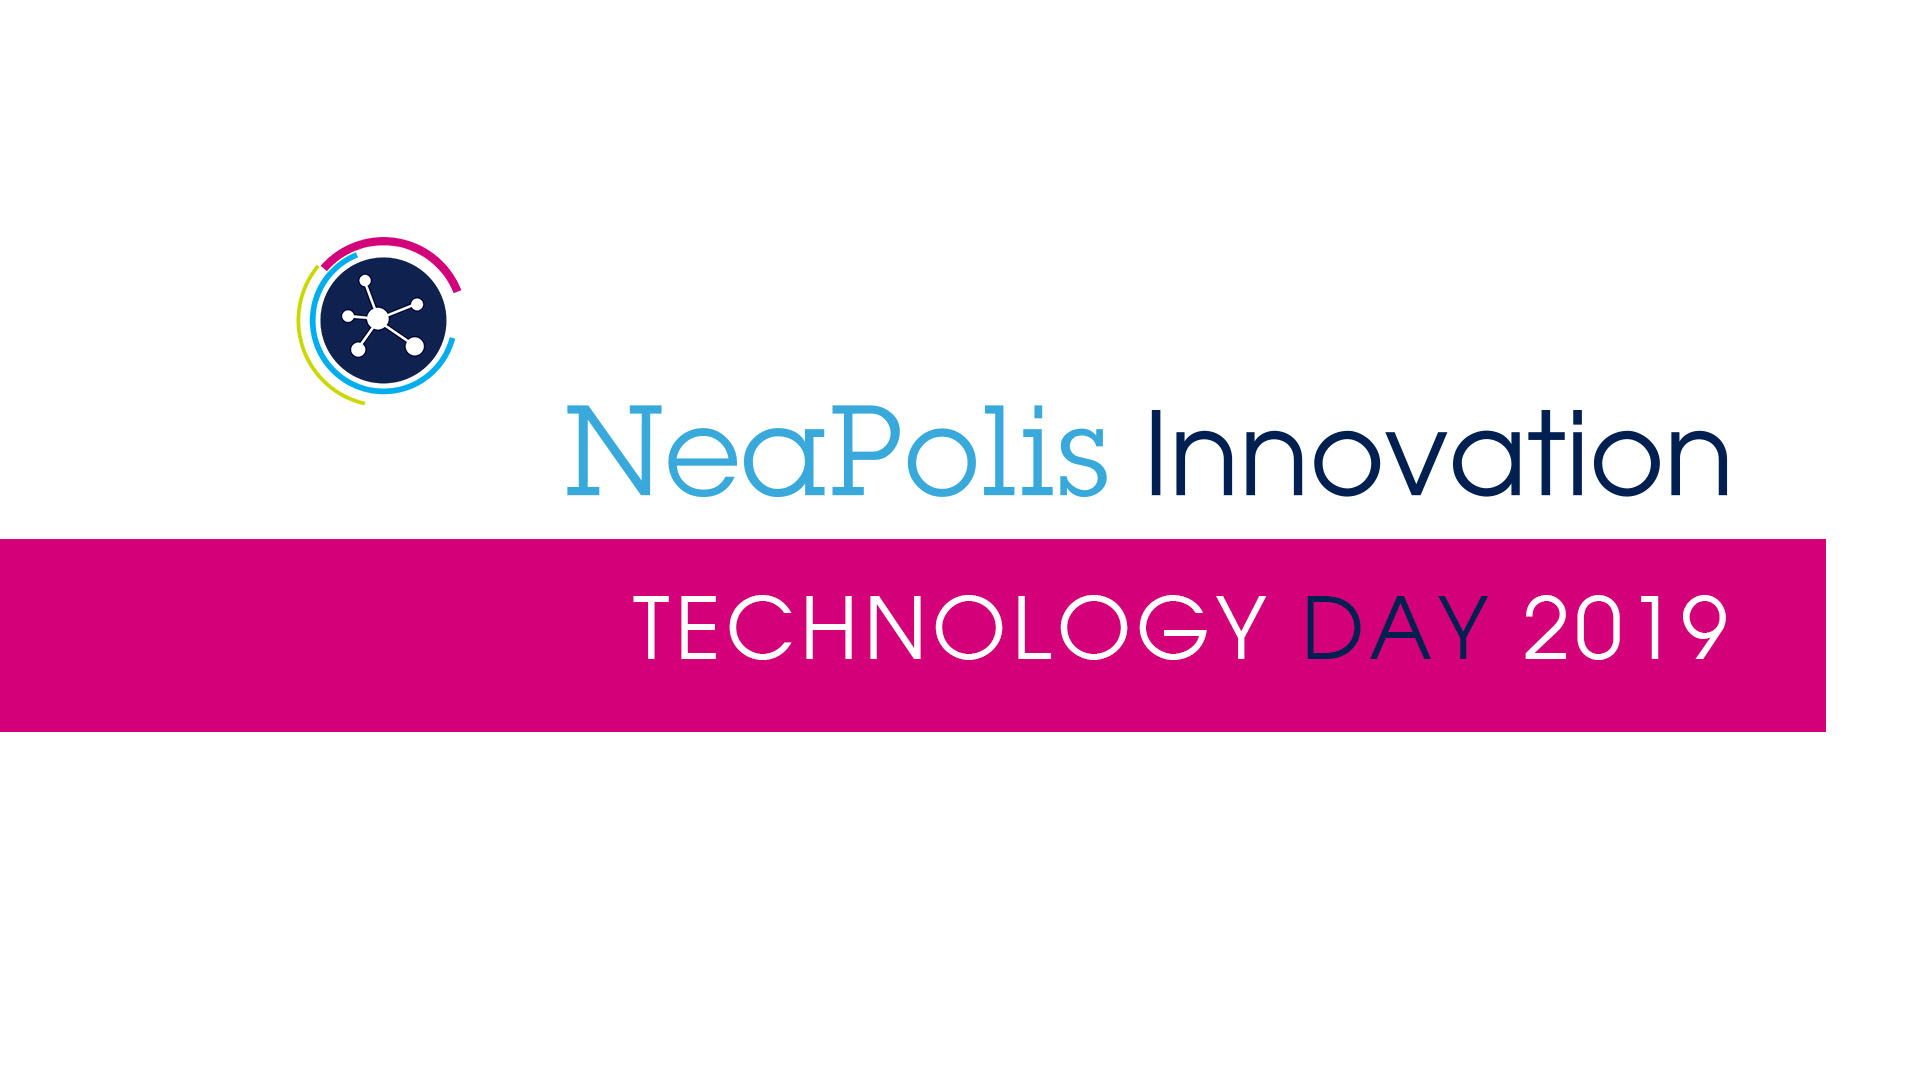 Technology Day 2019